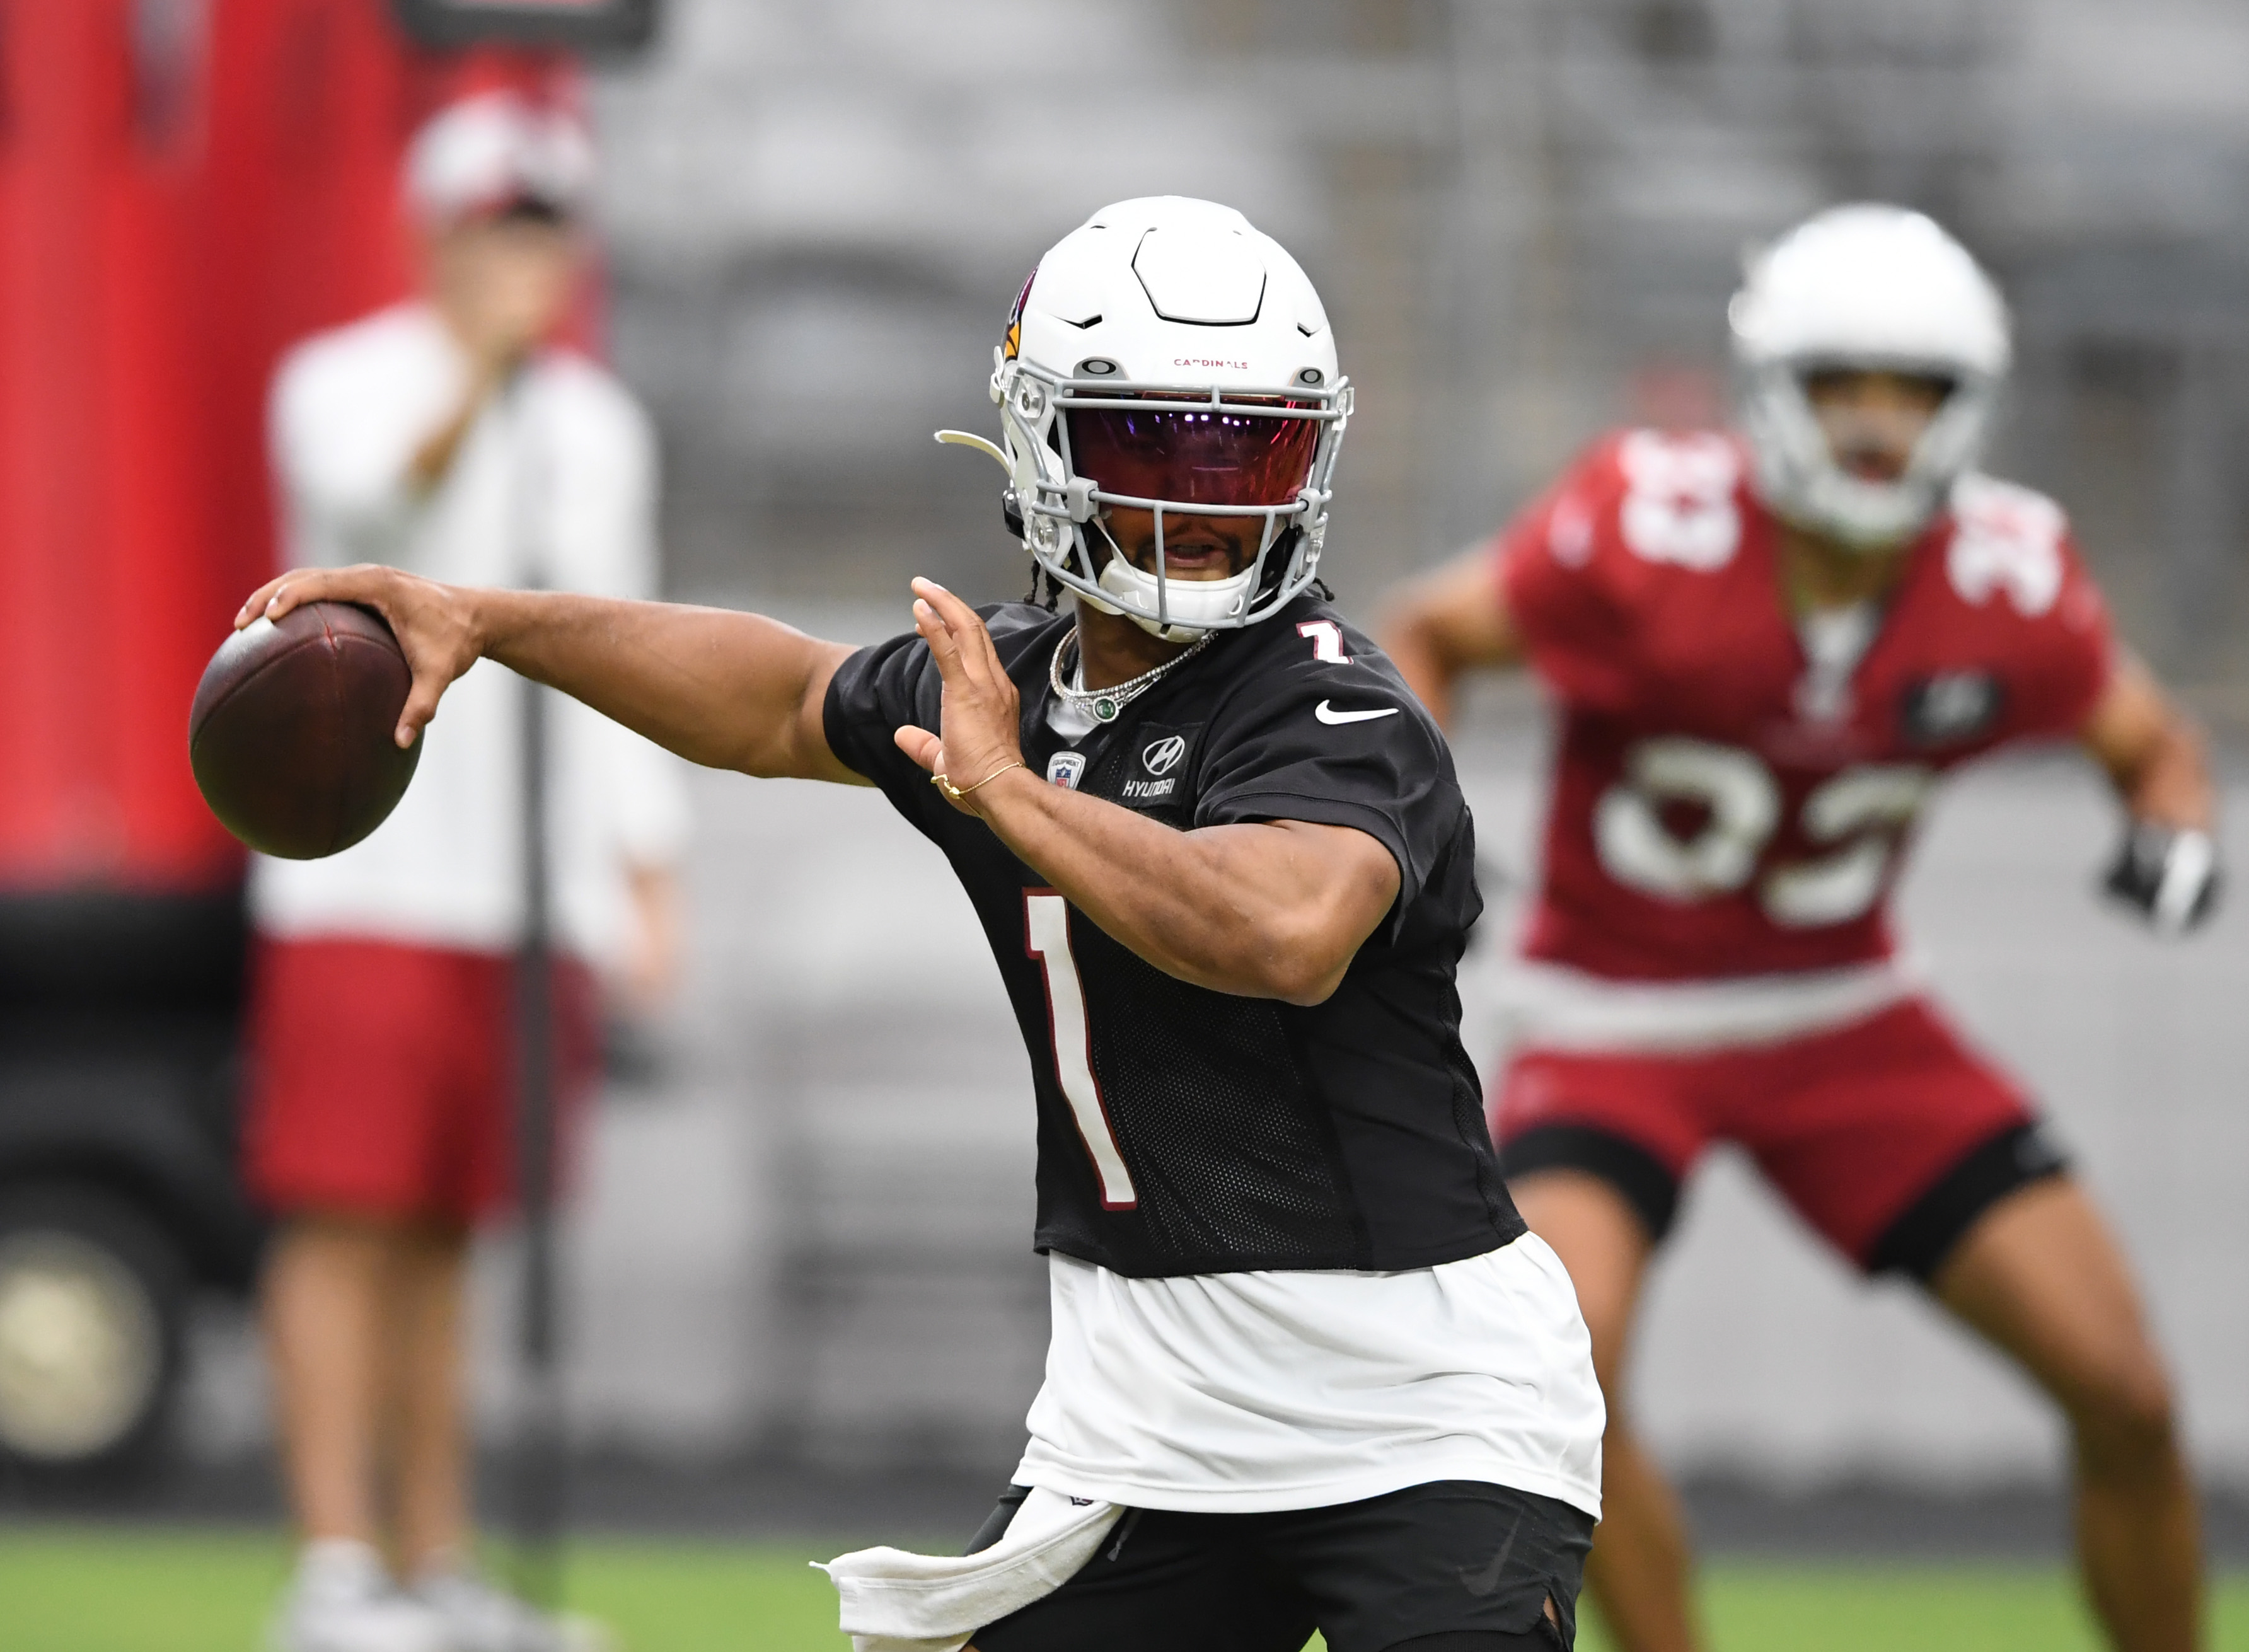 Kyler Murray #1 of the Arizona Cardinals participates in drills during Training Camp at State Farm Stadium on July 29, 2021 in Glendale, Arizona.